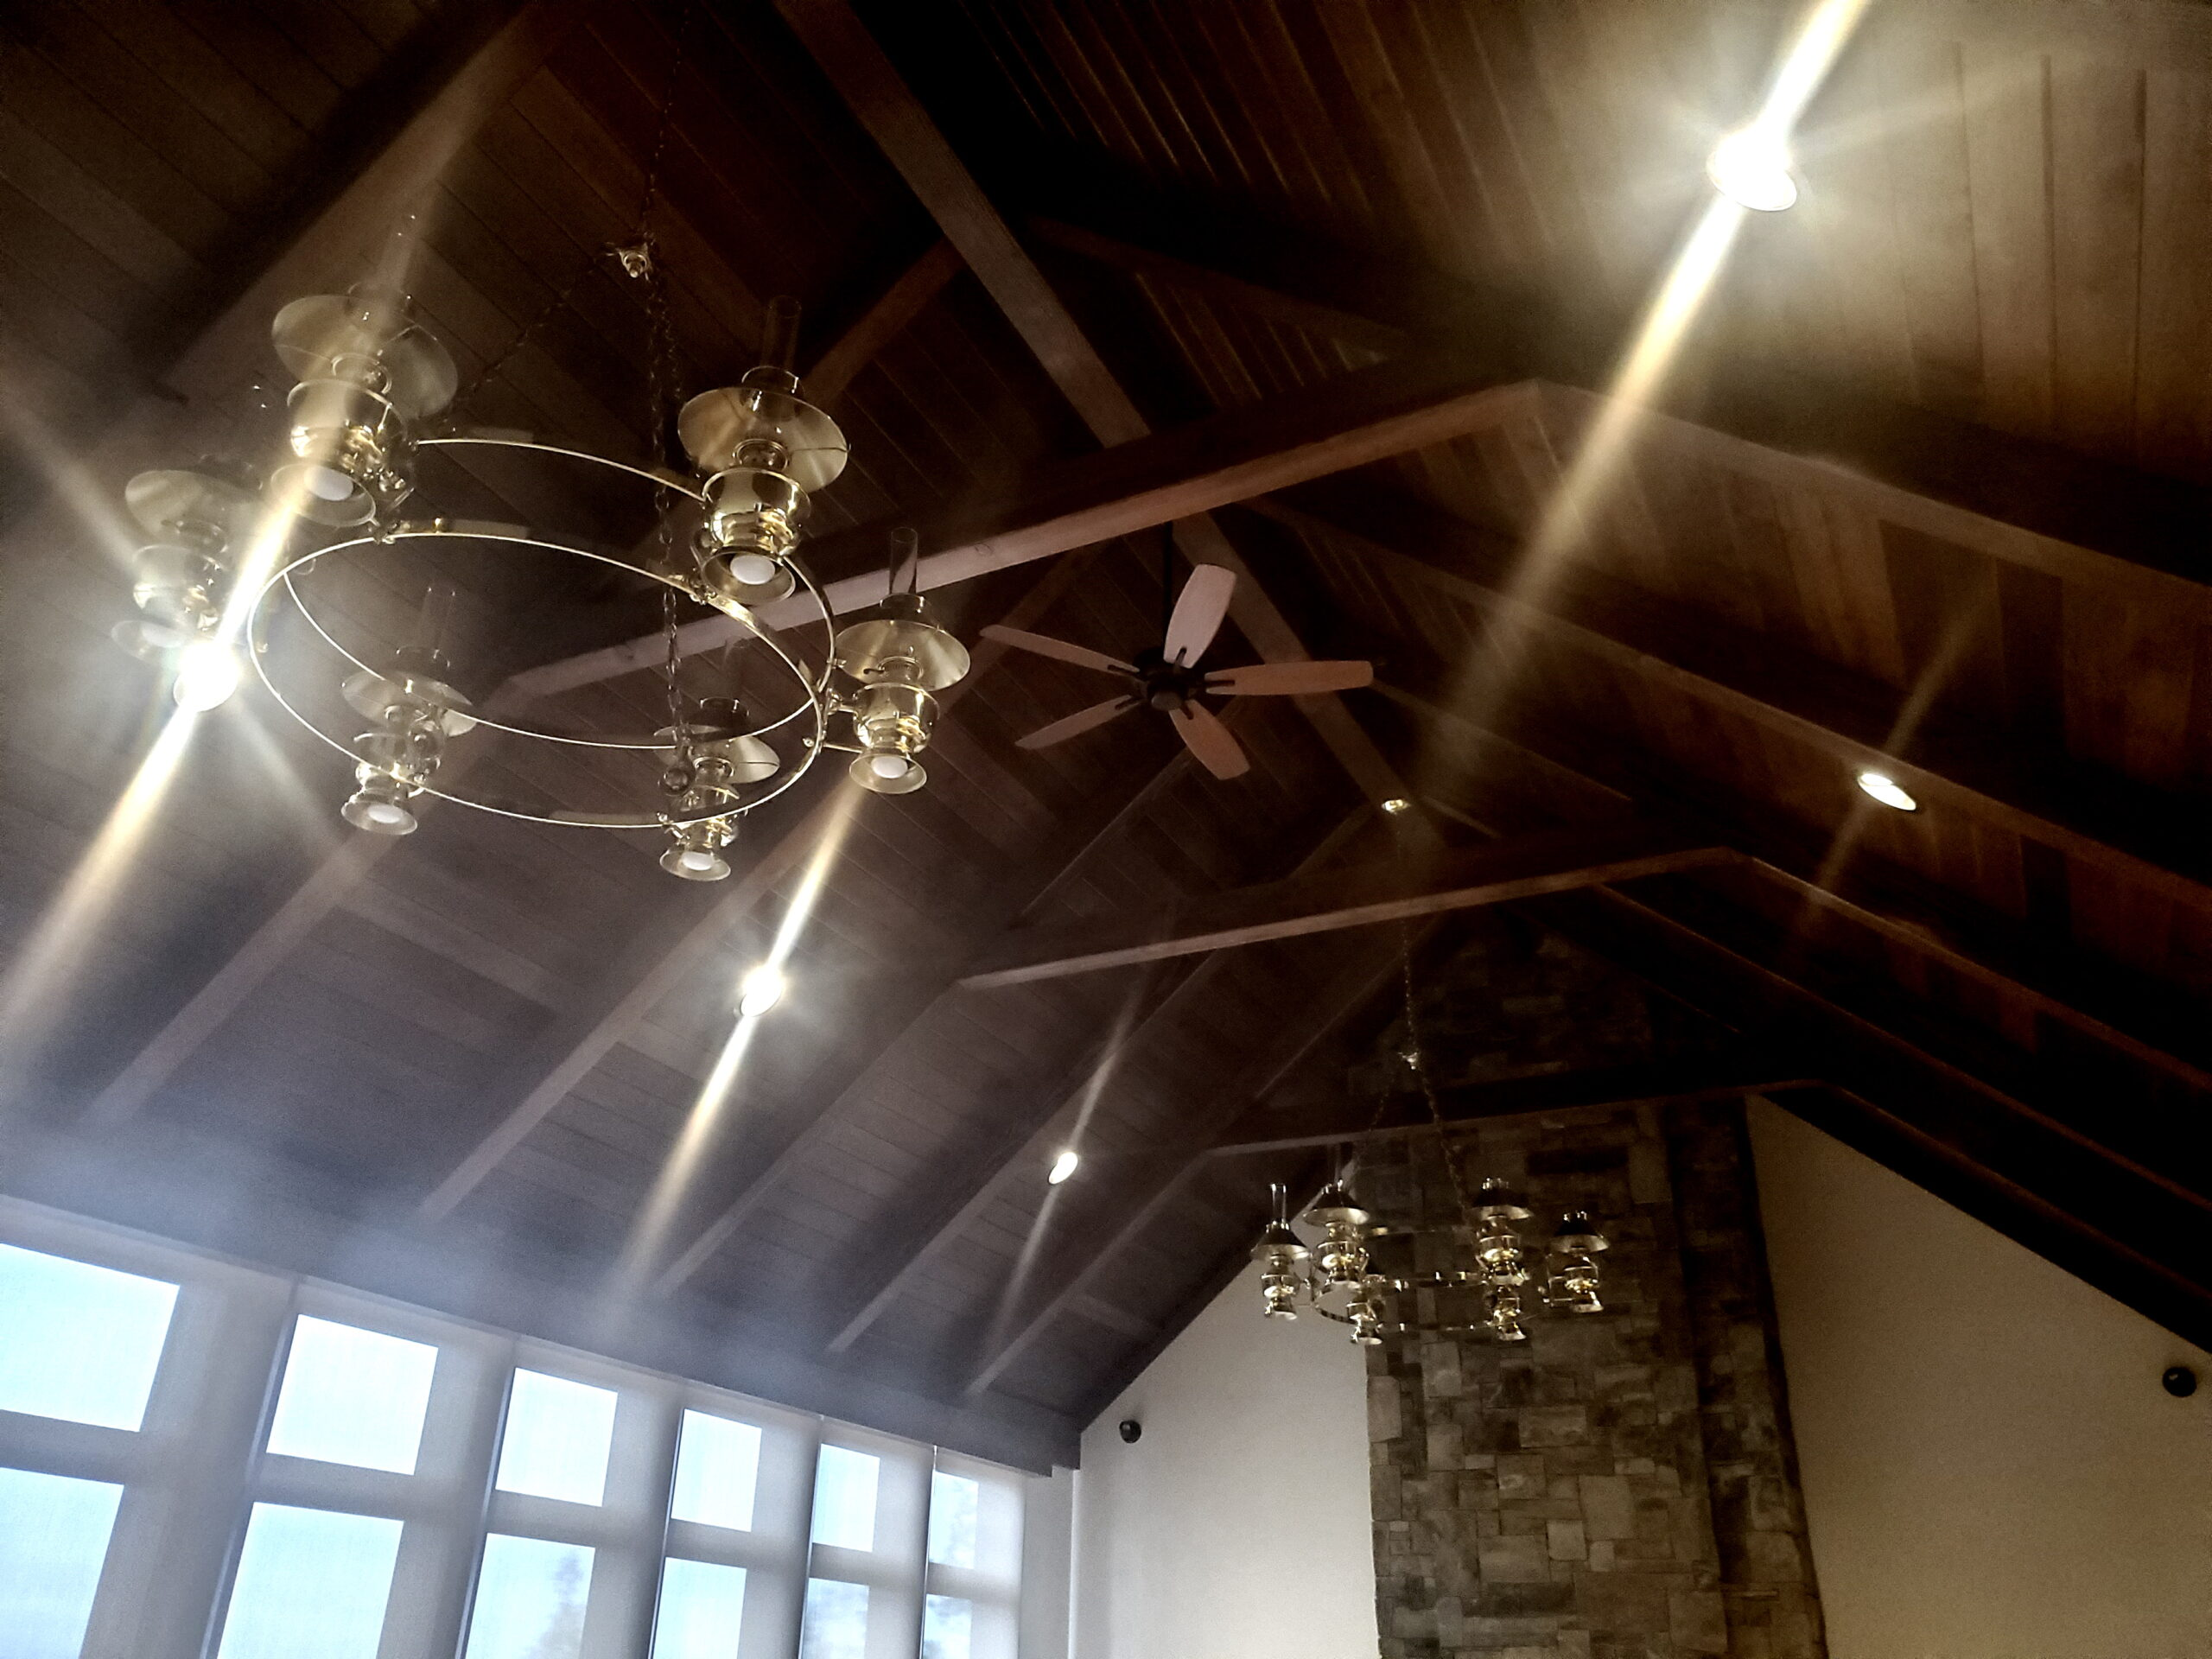 Ceiling timbers and Chandeliers in great room